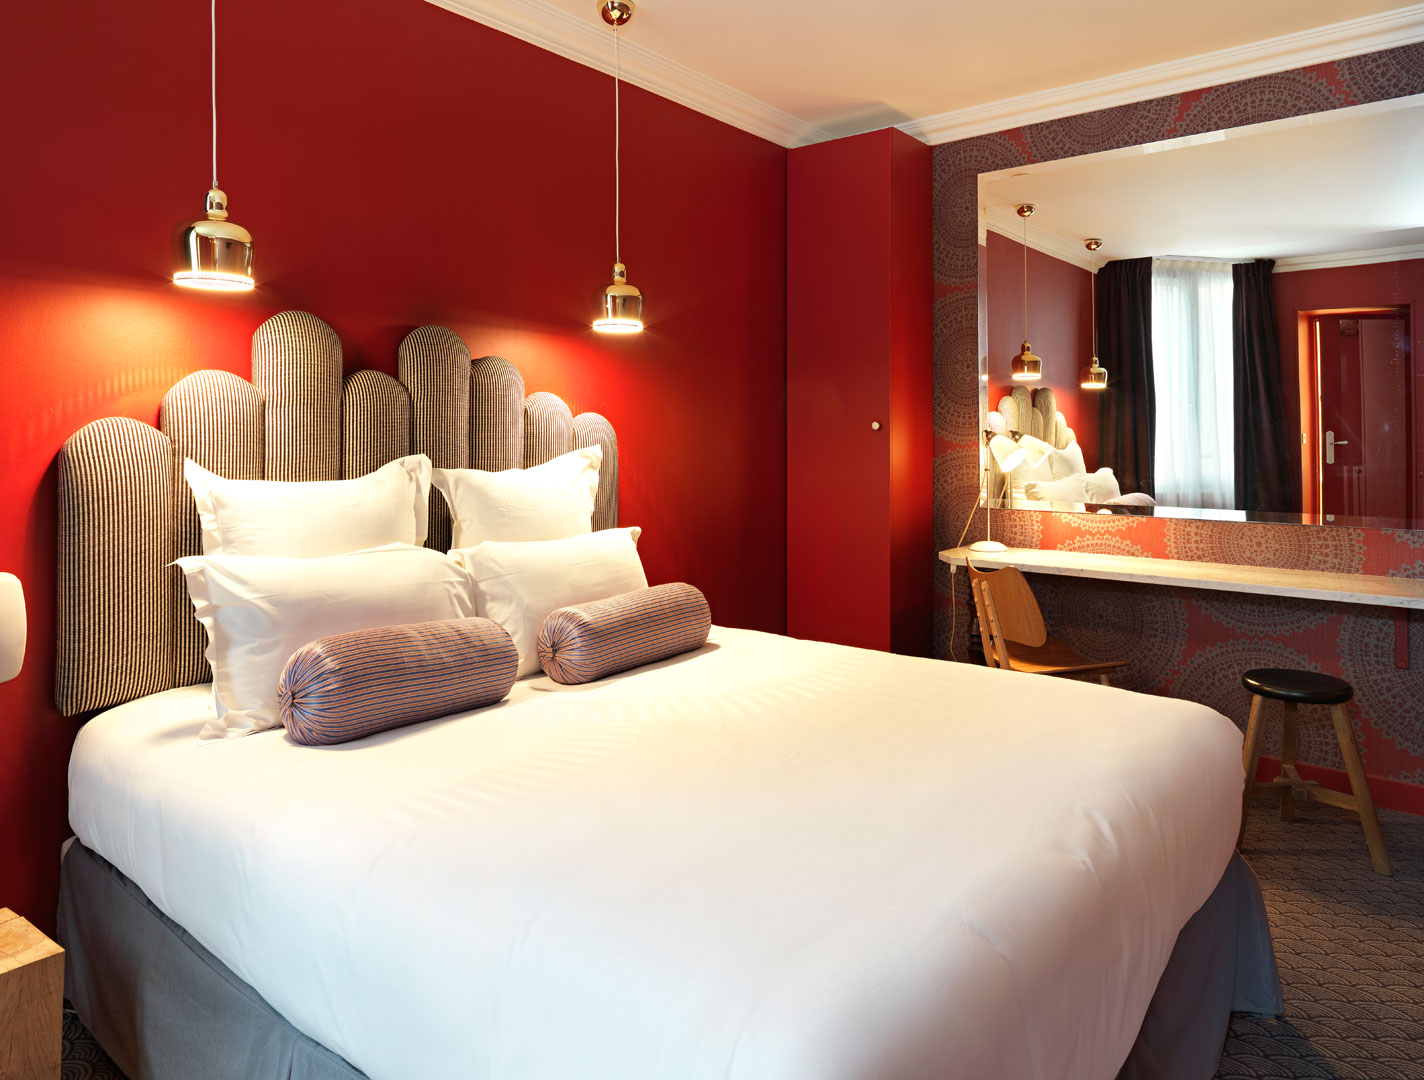 Paris-Hotel-Paradis-Paris-Red-Double-Room@2